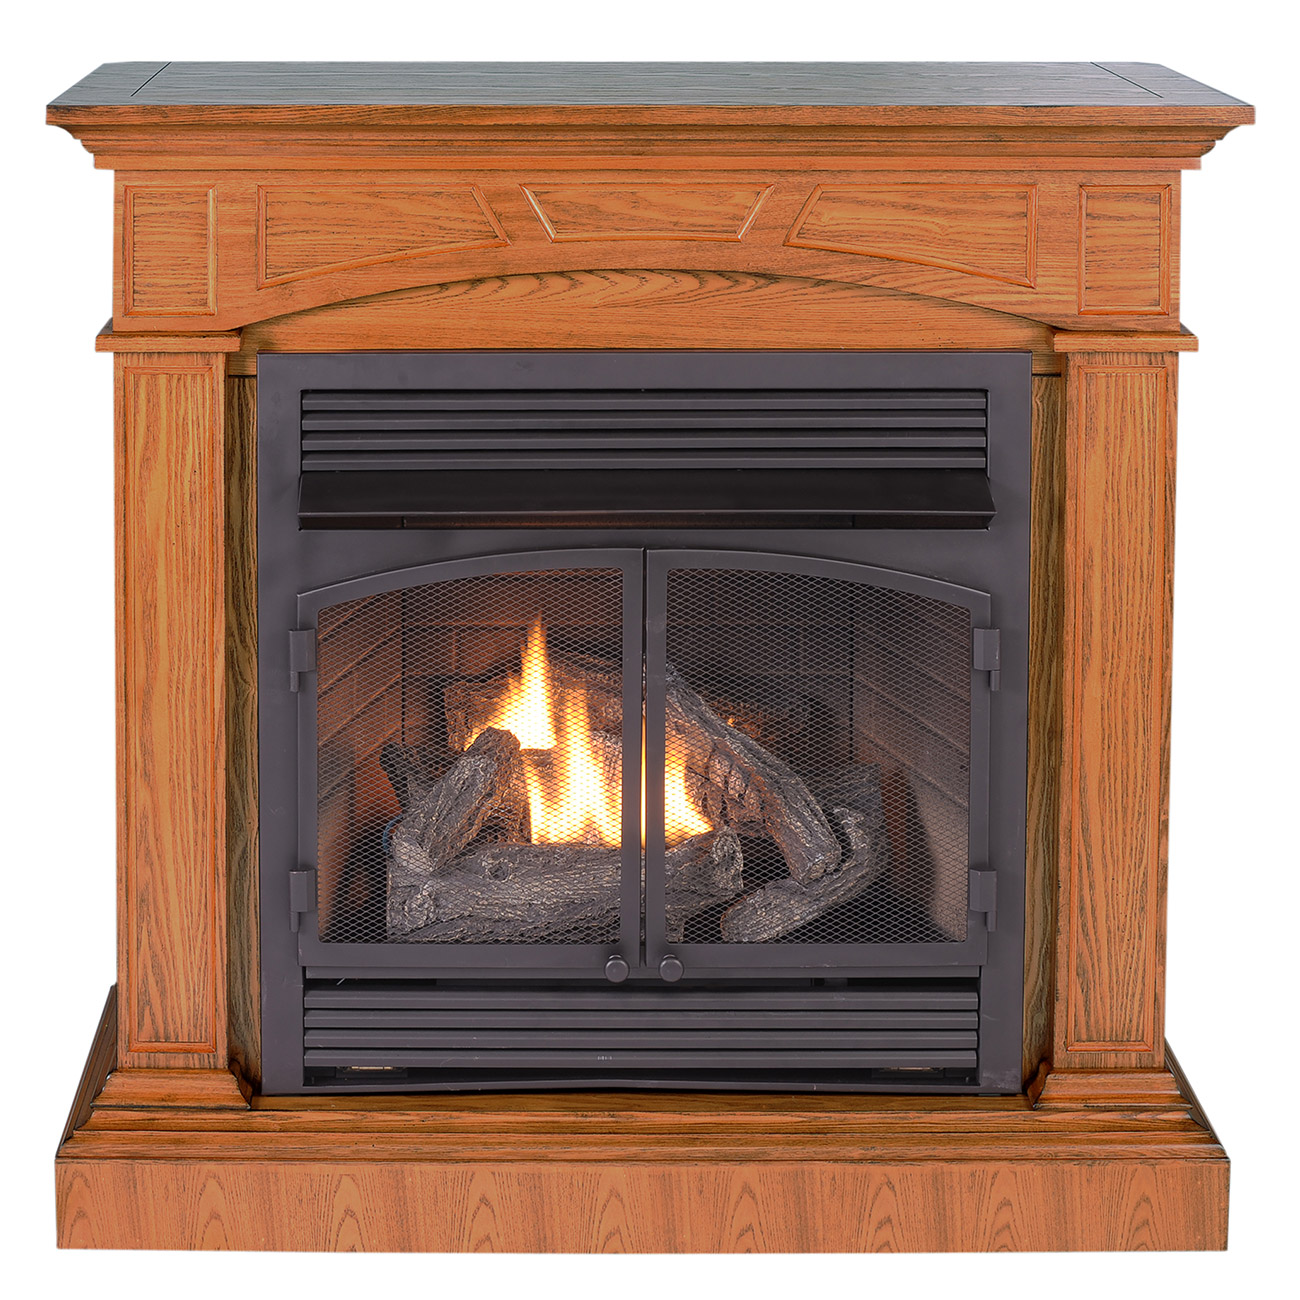 Ventless Fireplace: Ventless Fireplace System With Dual Fuel Technology